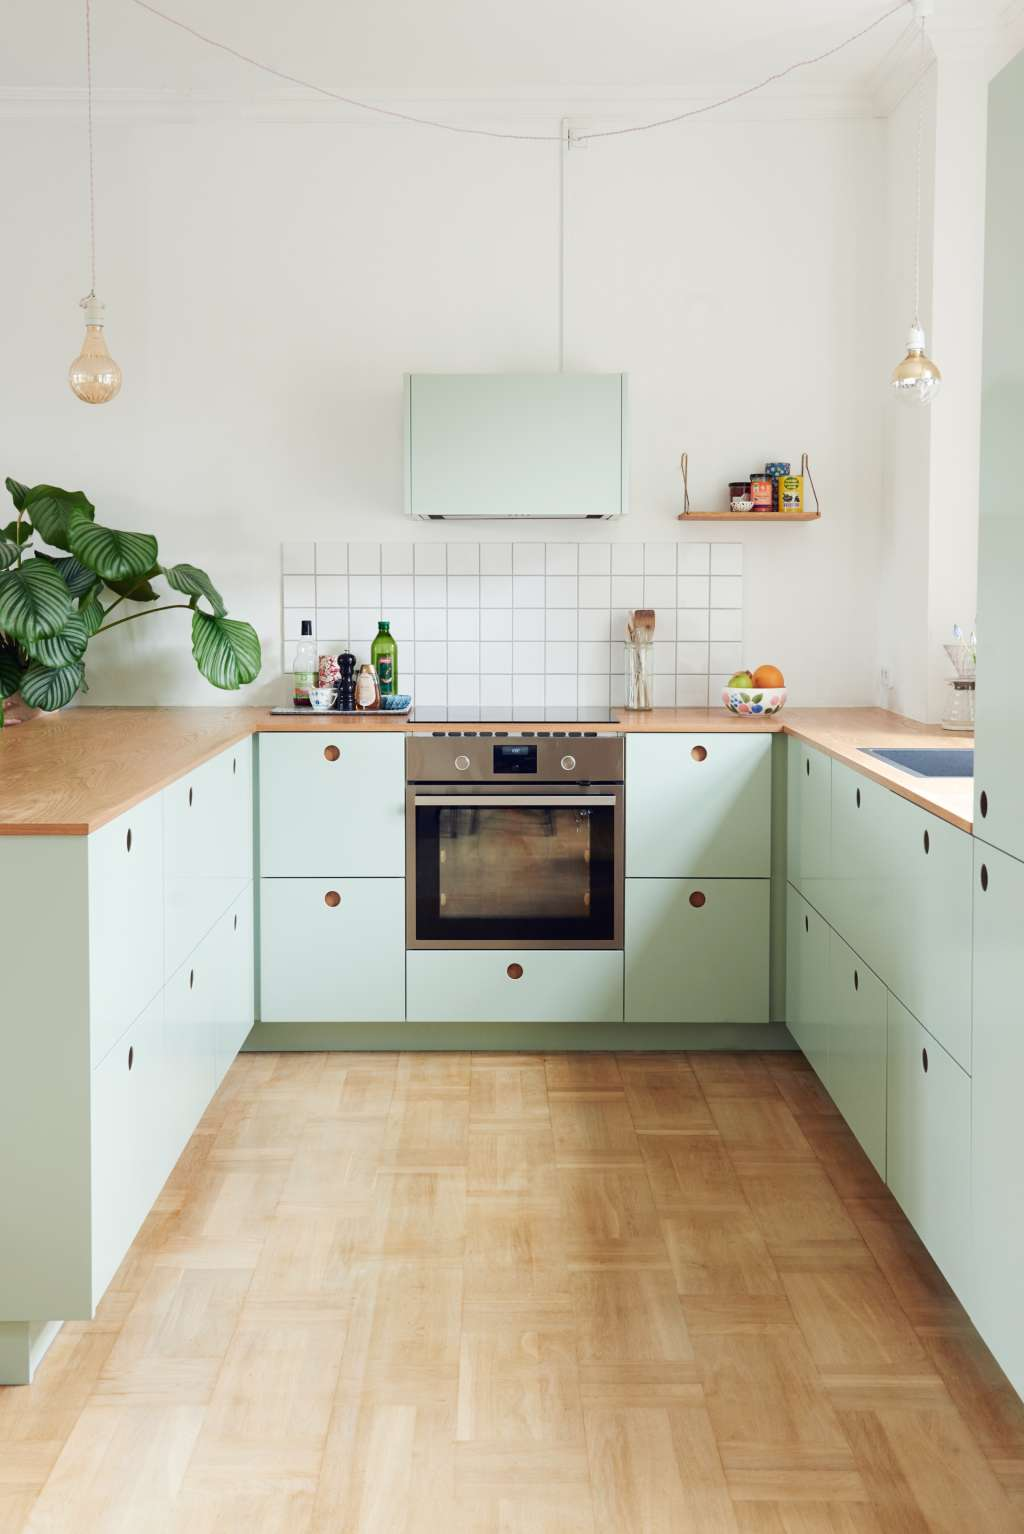 kitchens without upper cabinets: should you go without? | apartment